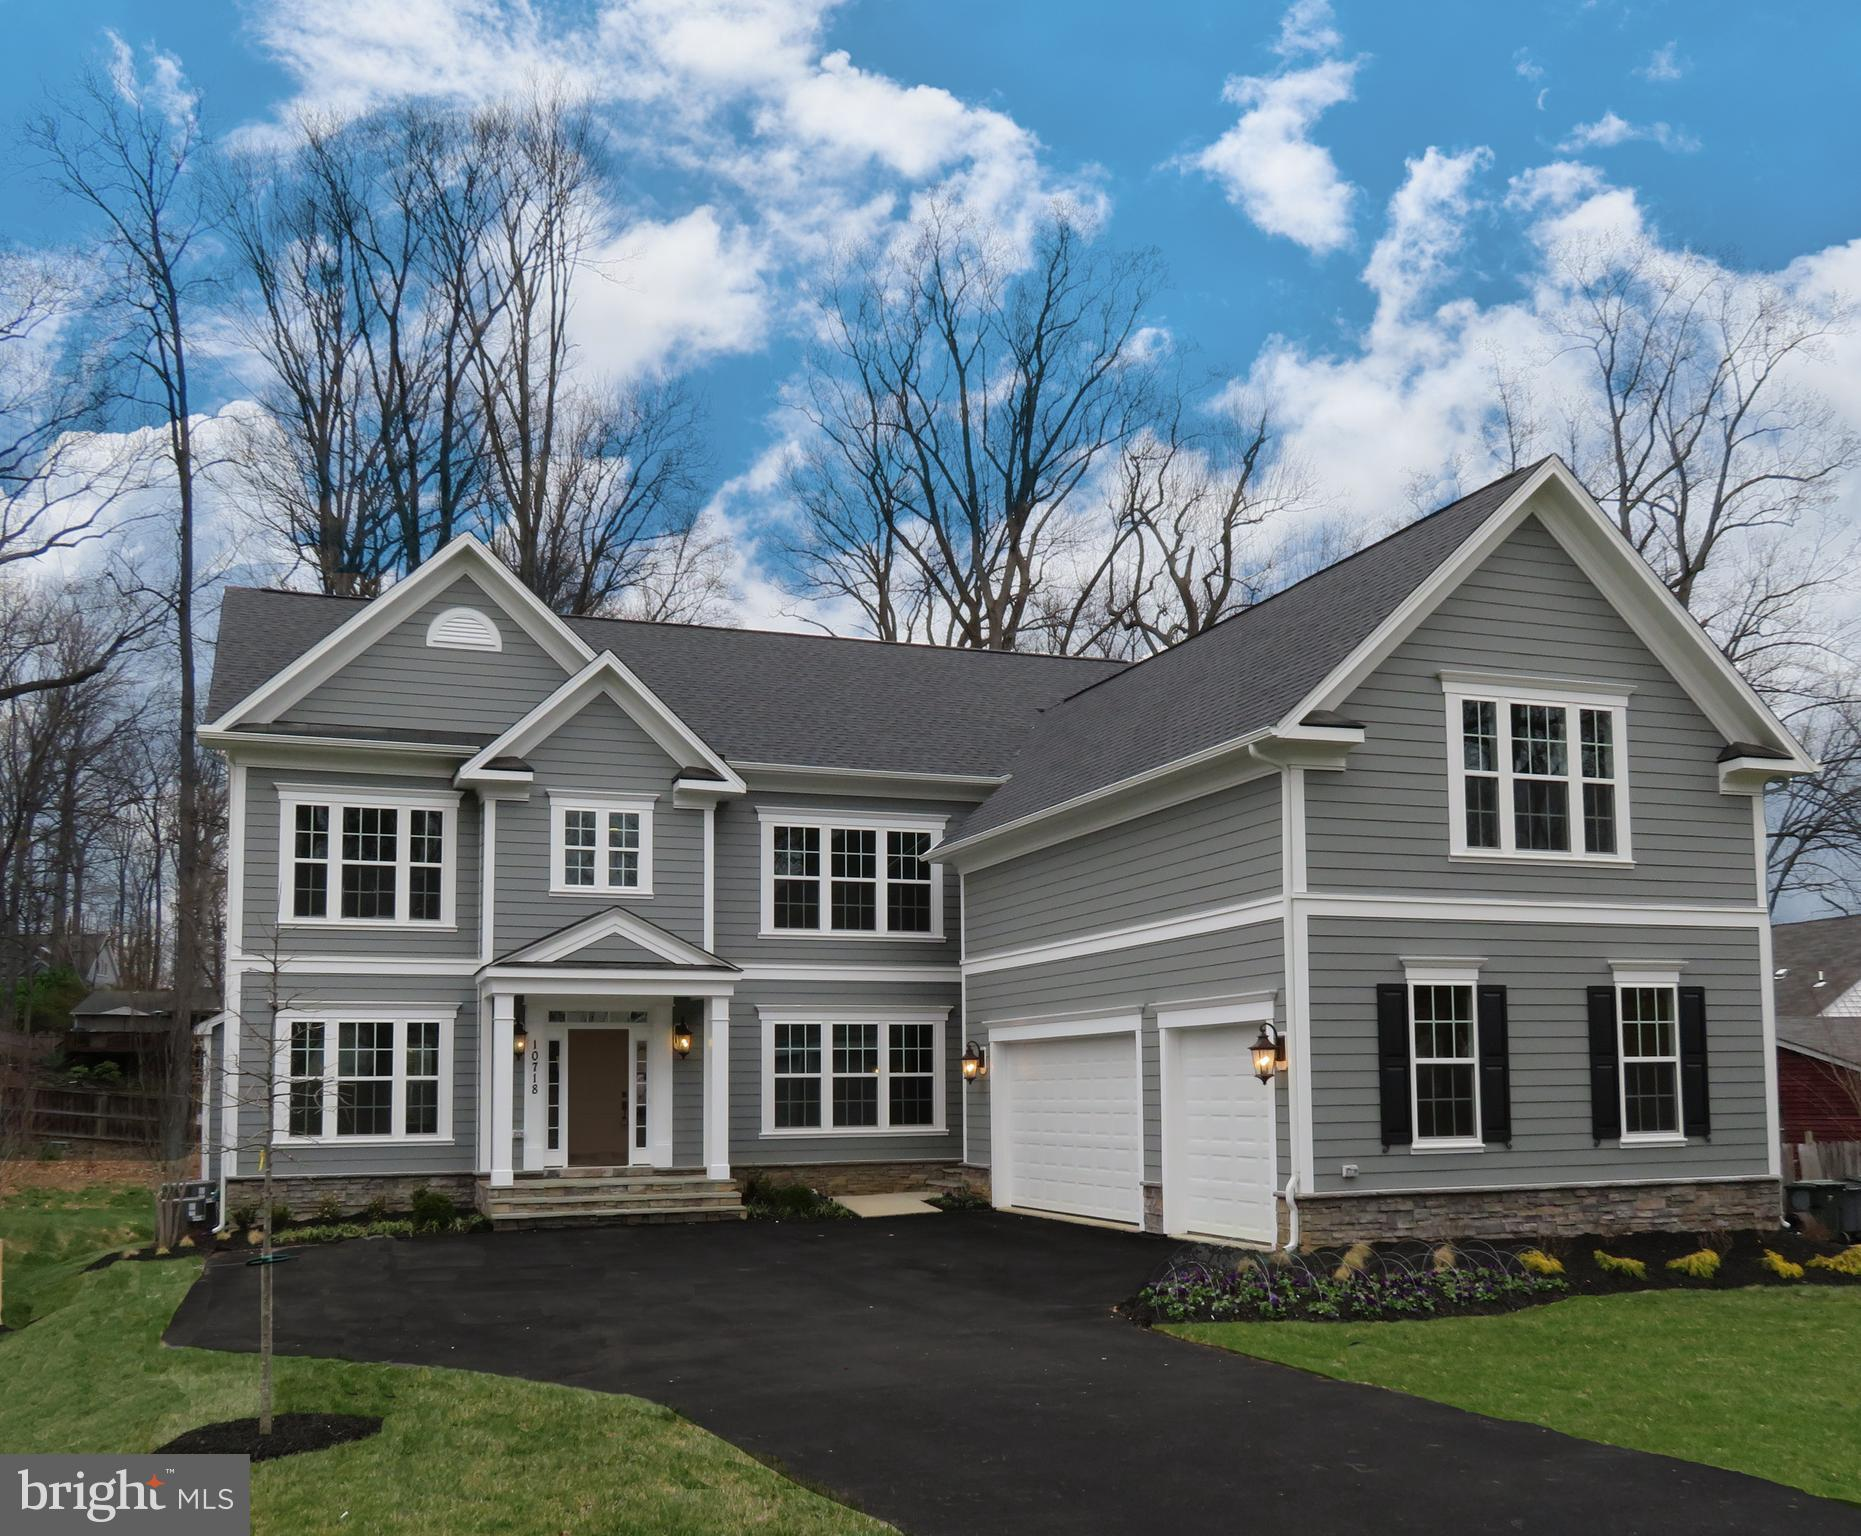 Pre-Construction Opportunity!Feb/Mar 2019 Delivery.Personalize options & finishes w/ contract by June 30th!28000+ sq ft lot w/ 4764 sq ft main & upper, includes Morning Rm off open Kitchen to over sized Great Rm w/coffered ceiling and fireplace. Gourmet Kitchen featuring stainless appliances and granite countertops. FormalLiving/Dining/Study on Main level & Luxurious Owner~s Suite upstairs.